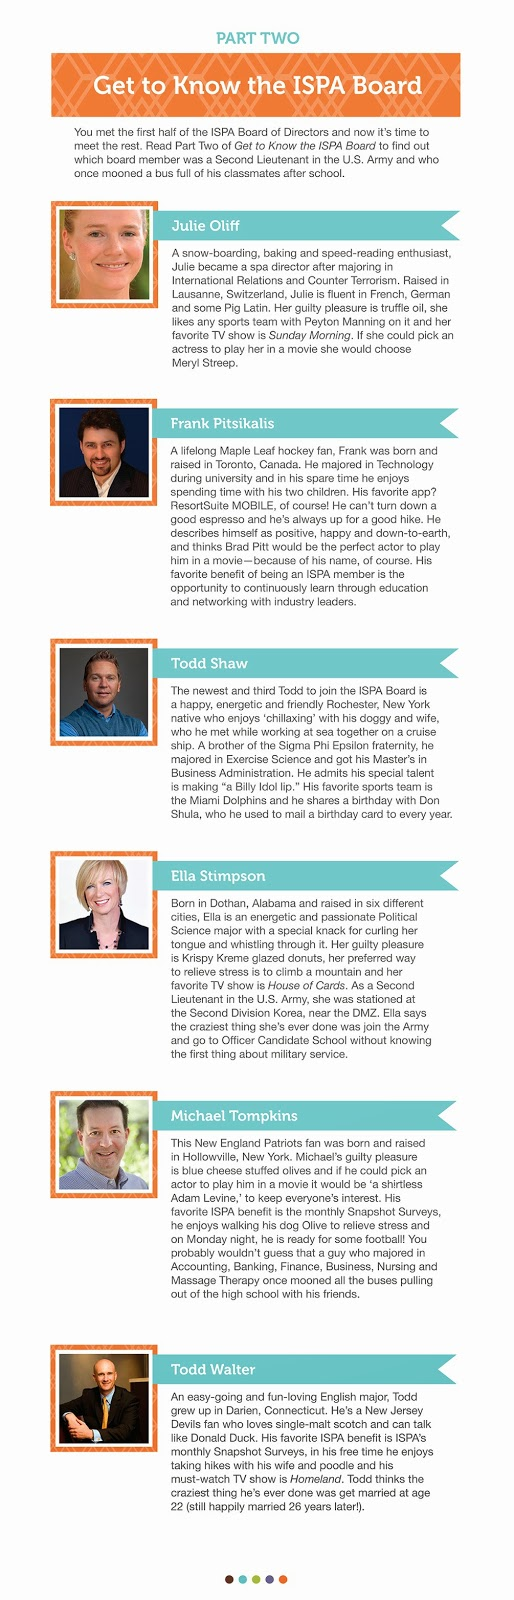 Get to Know the ISPA Board -- Part Two